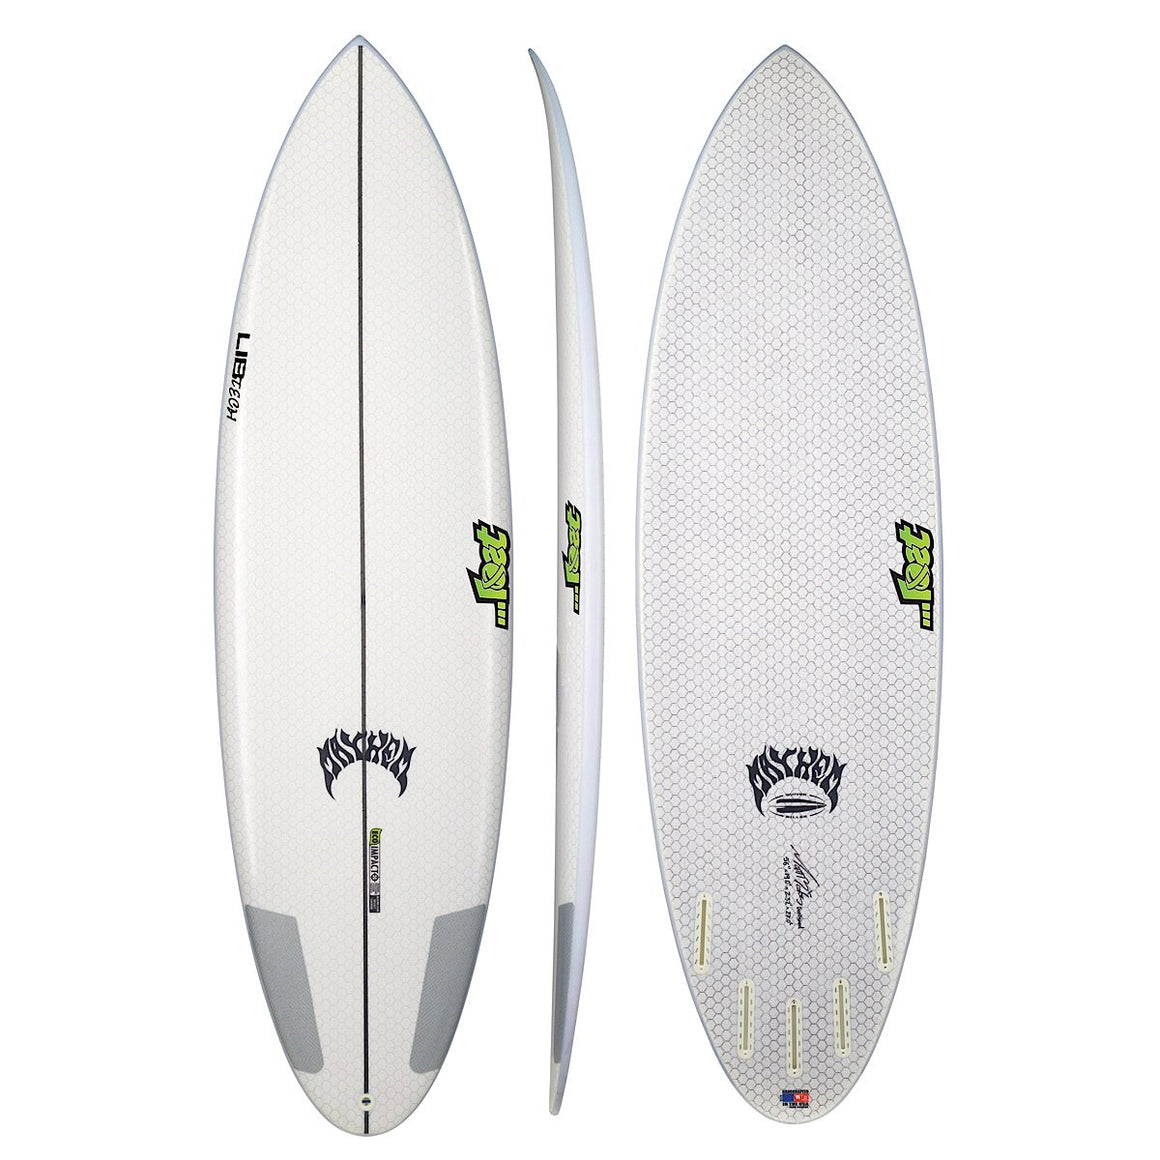 Libtech - Lost Quiver Killer 5'10 (FCSII compatible)